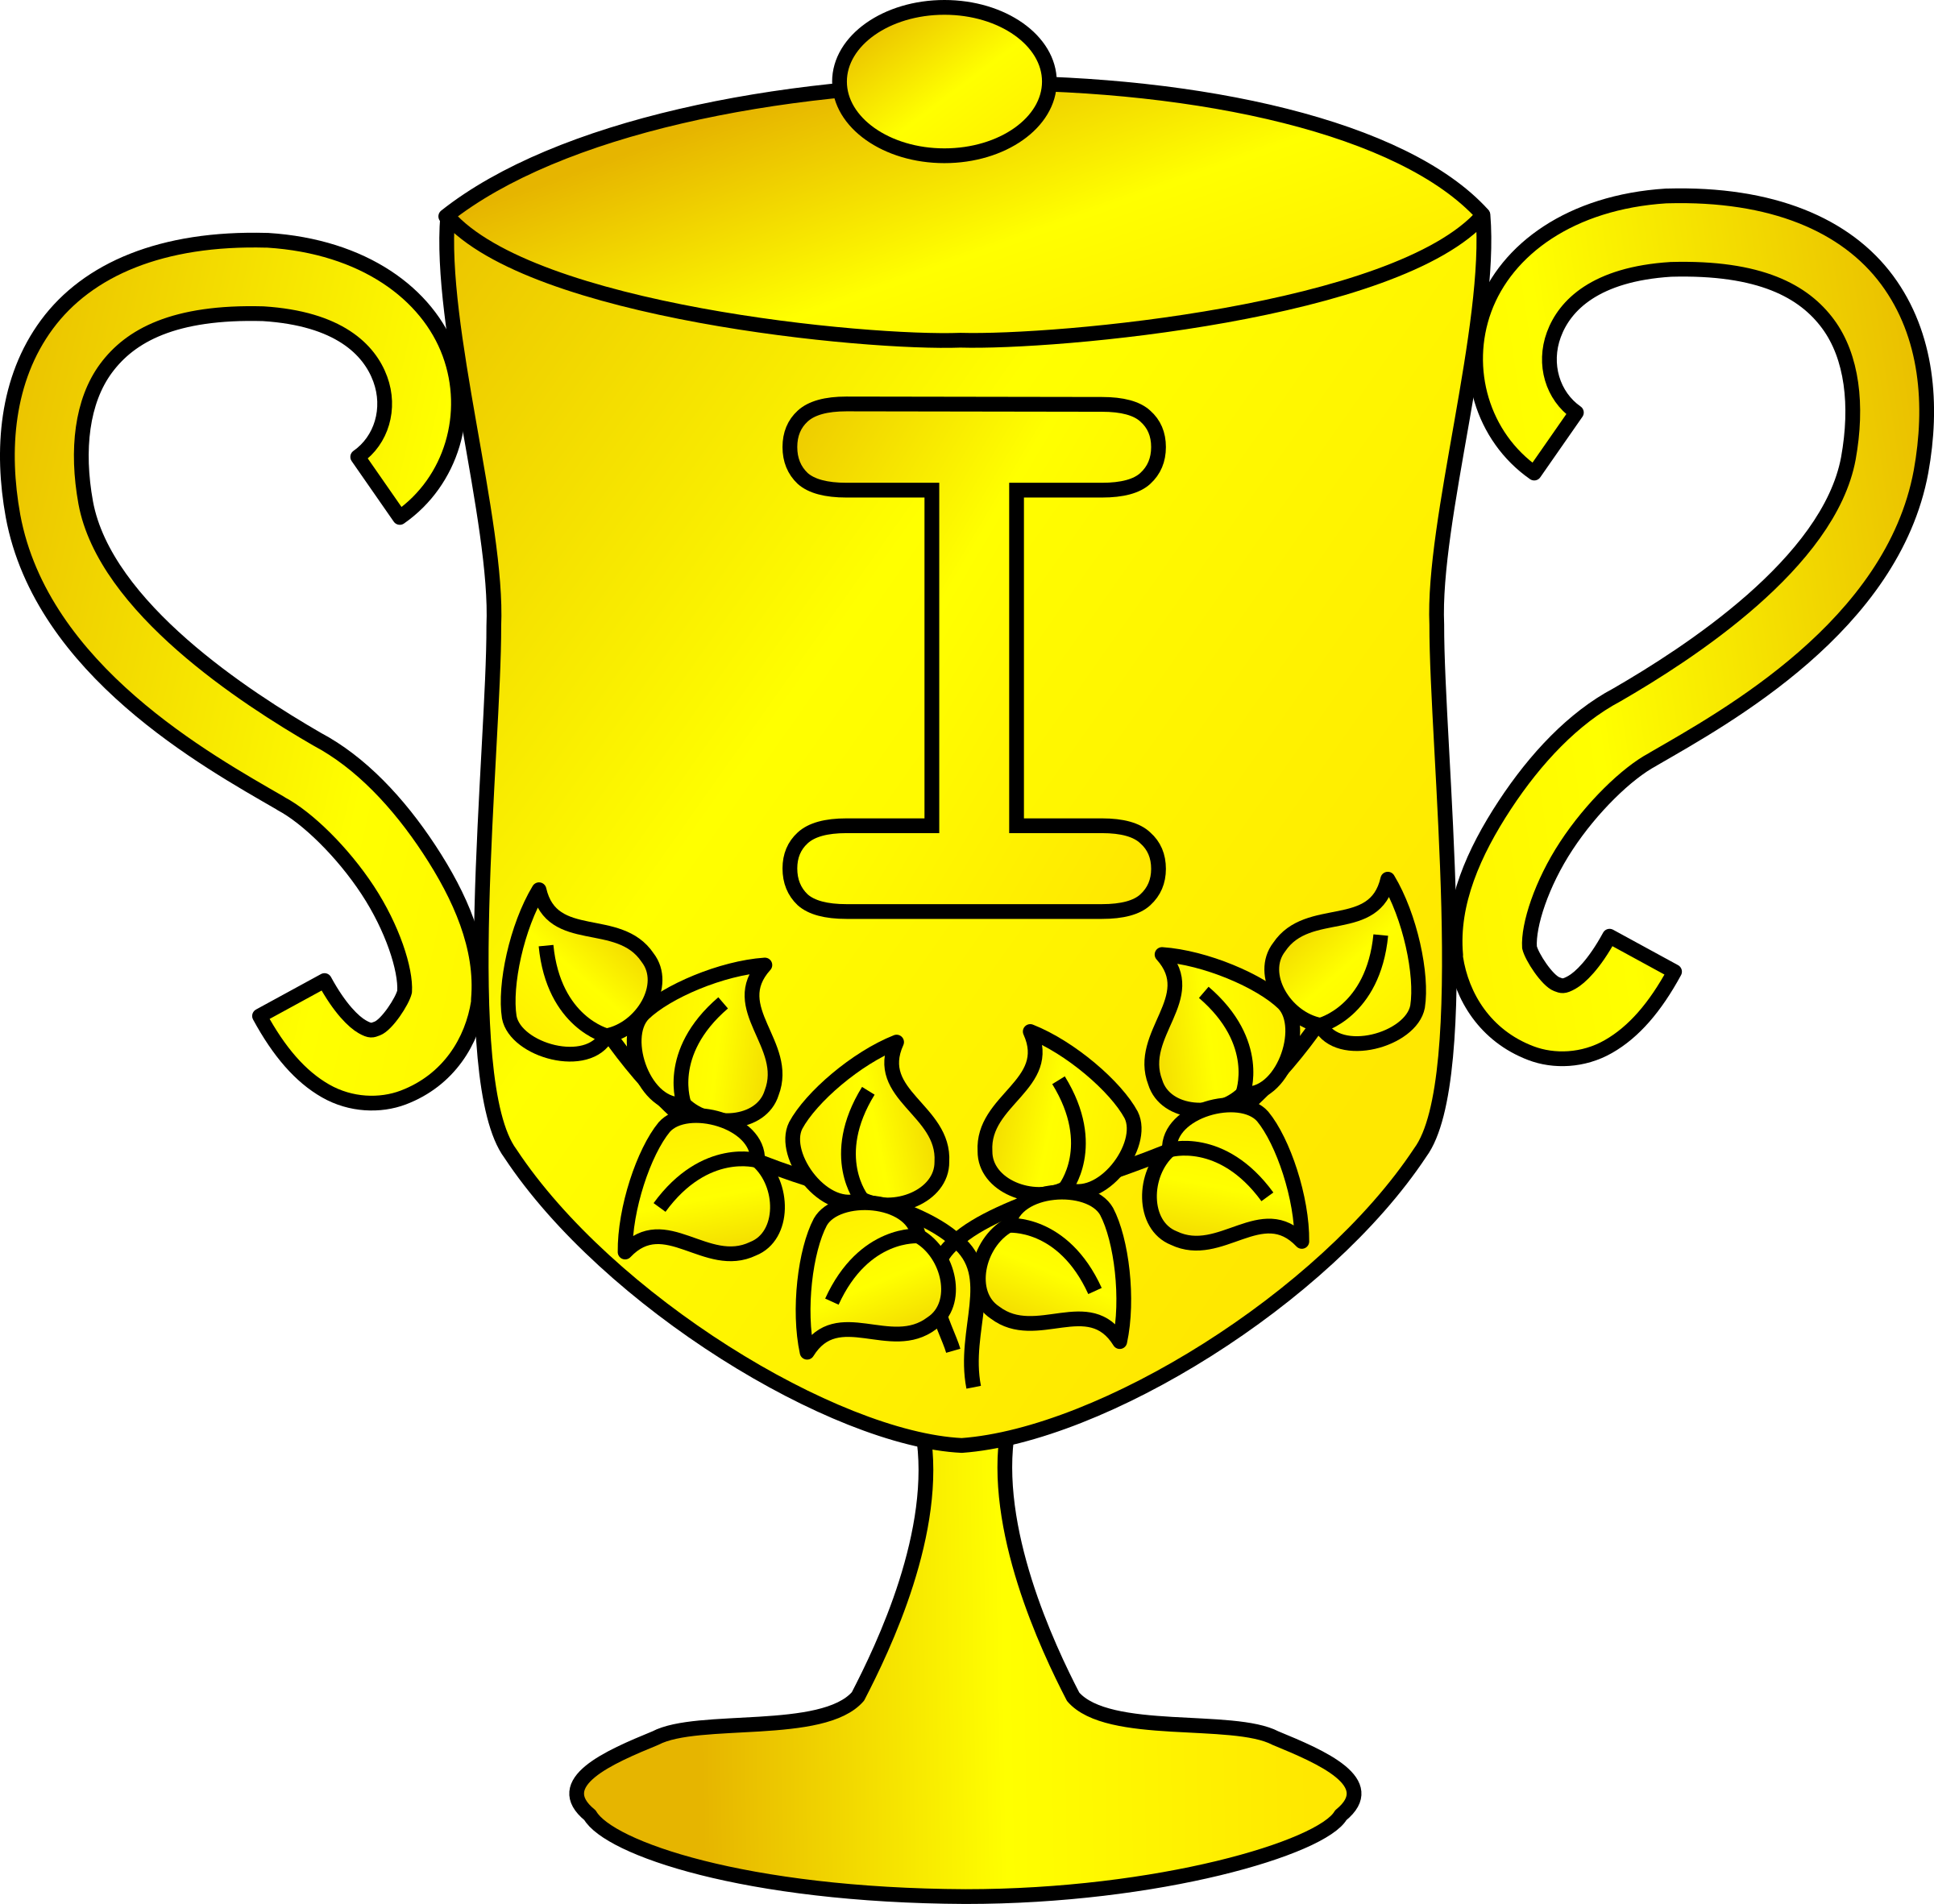 Basketball championship trophy clipart picture free Golden Trophy Clipart & Golden Trophy Clip Art Images #2215 - OnClipart picture free